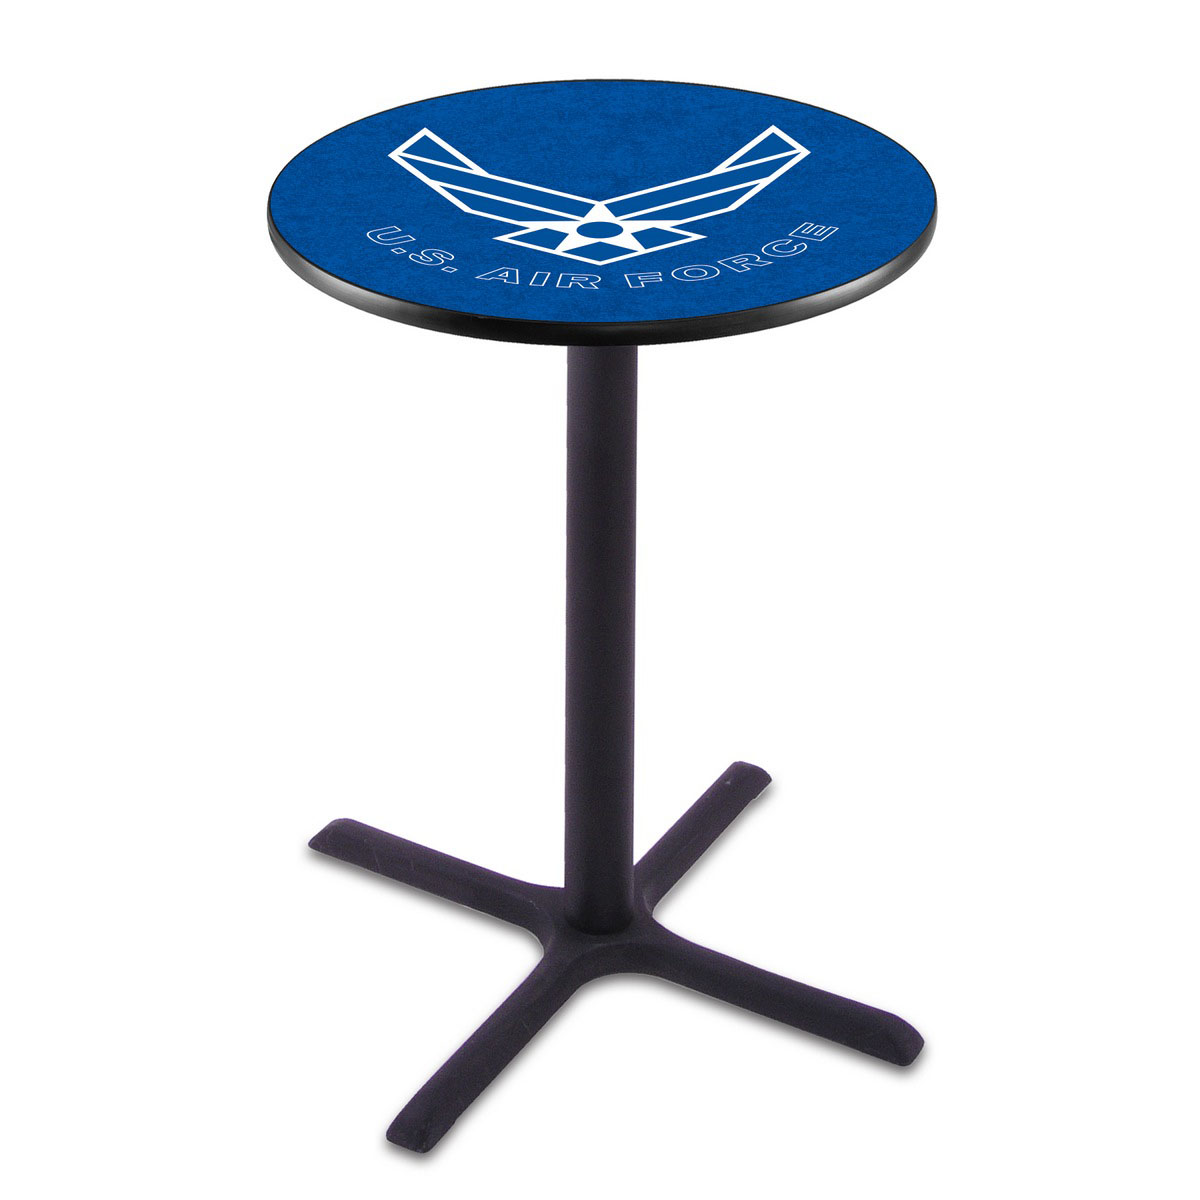 Check out the U Air Force Wrinkle Pub Table Product Photo